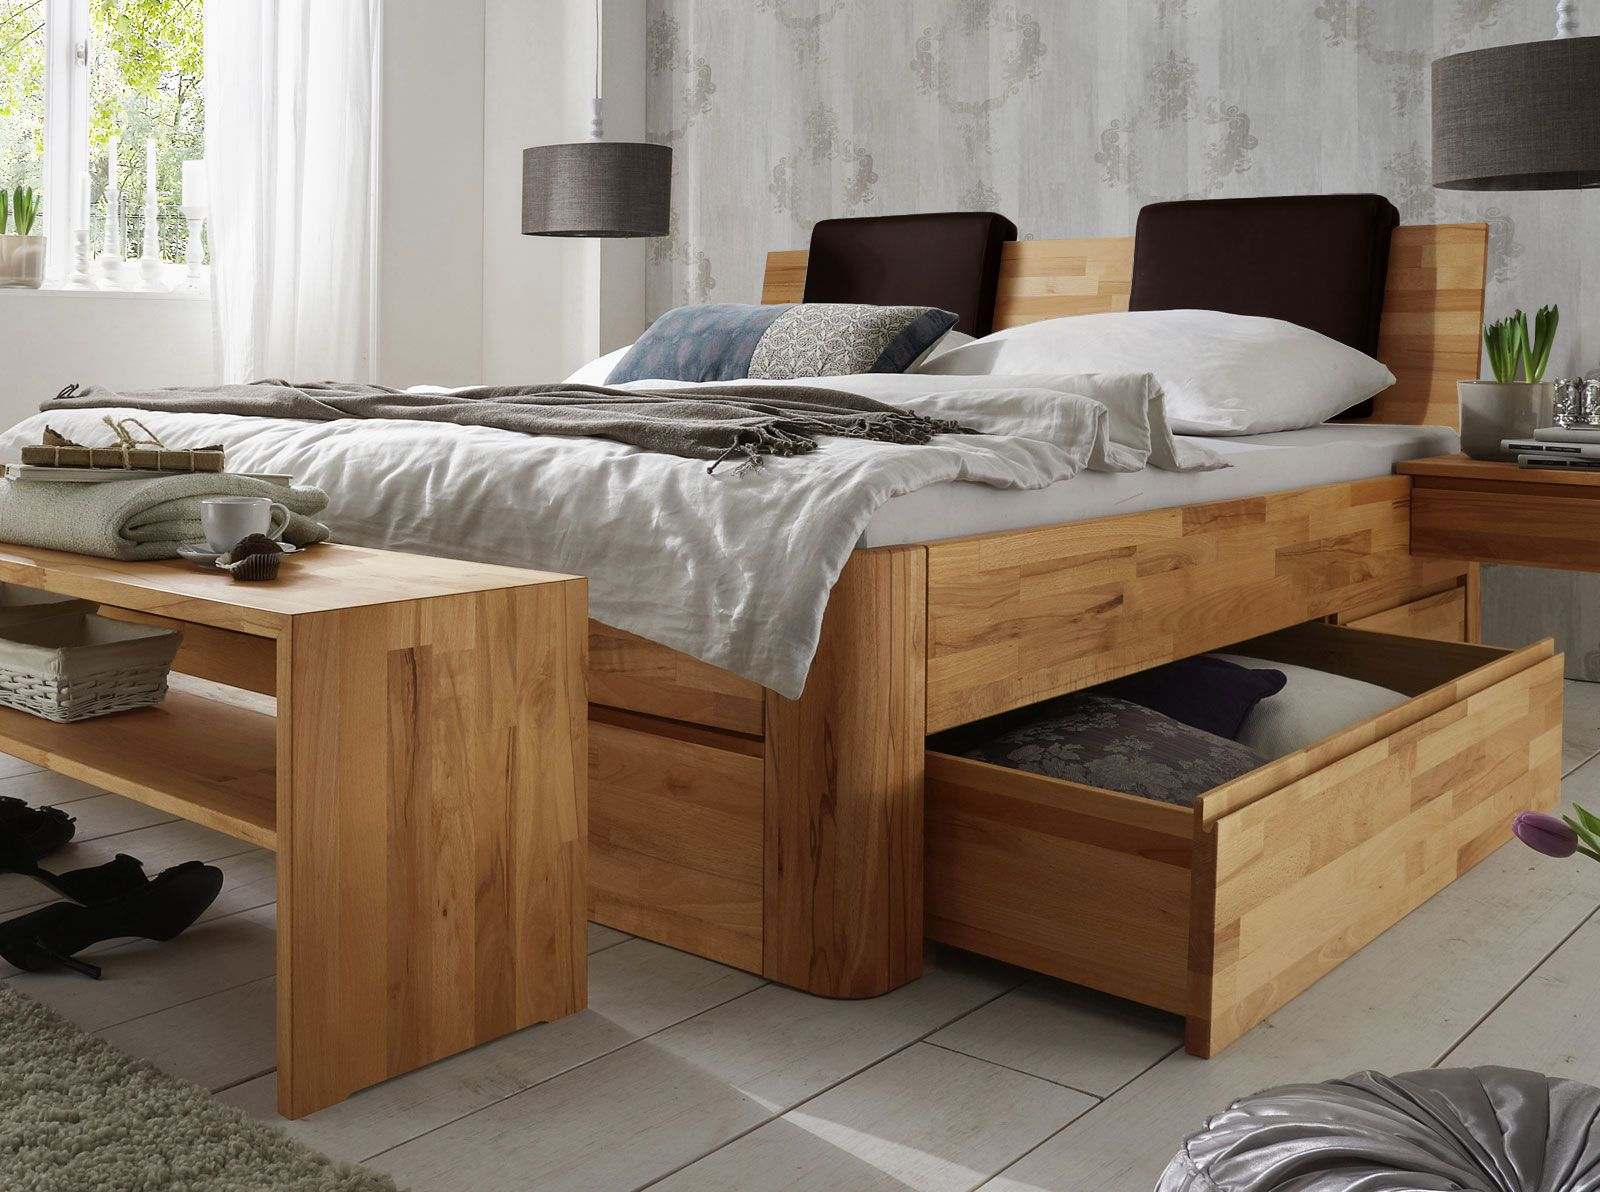 schubkasten doppelbett zarbo dunkelbraun kunstleder. Black Bedroom Furniture Sets. Home Design Ideas